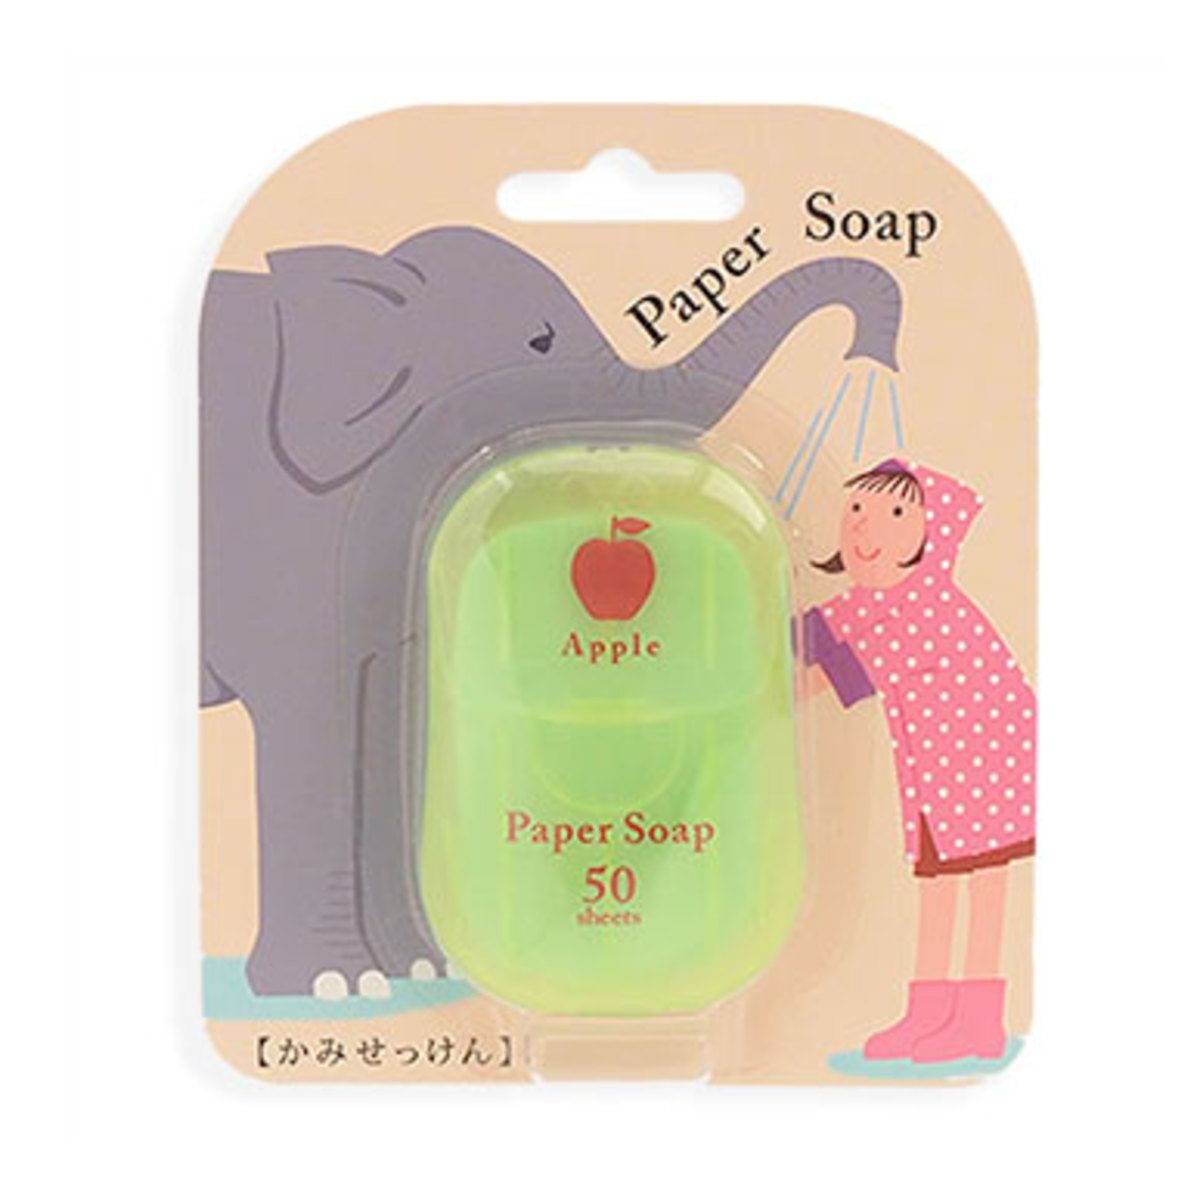 Apple Scent Paper Soap